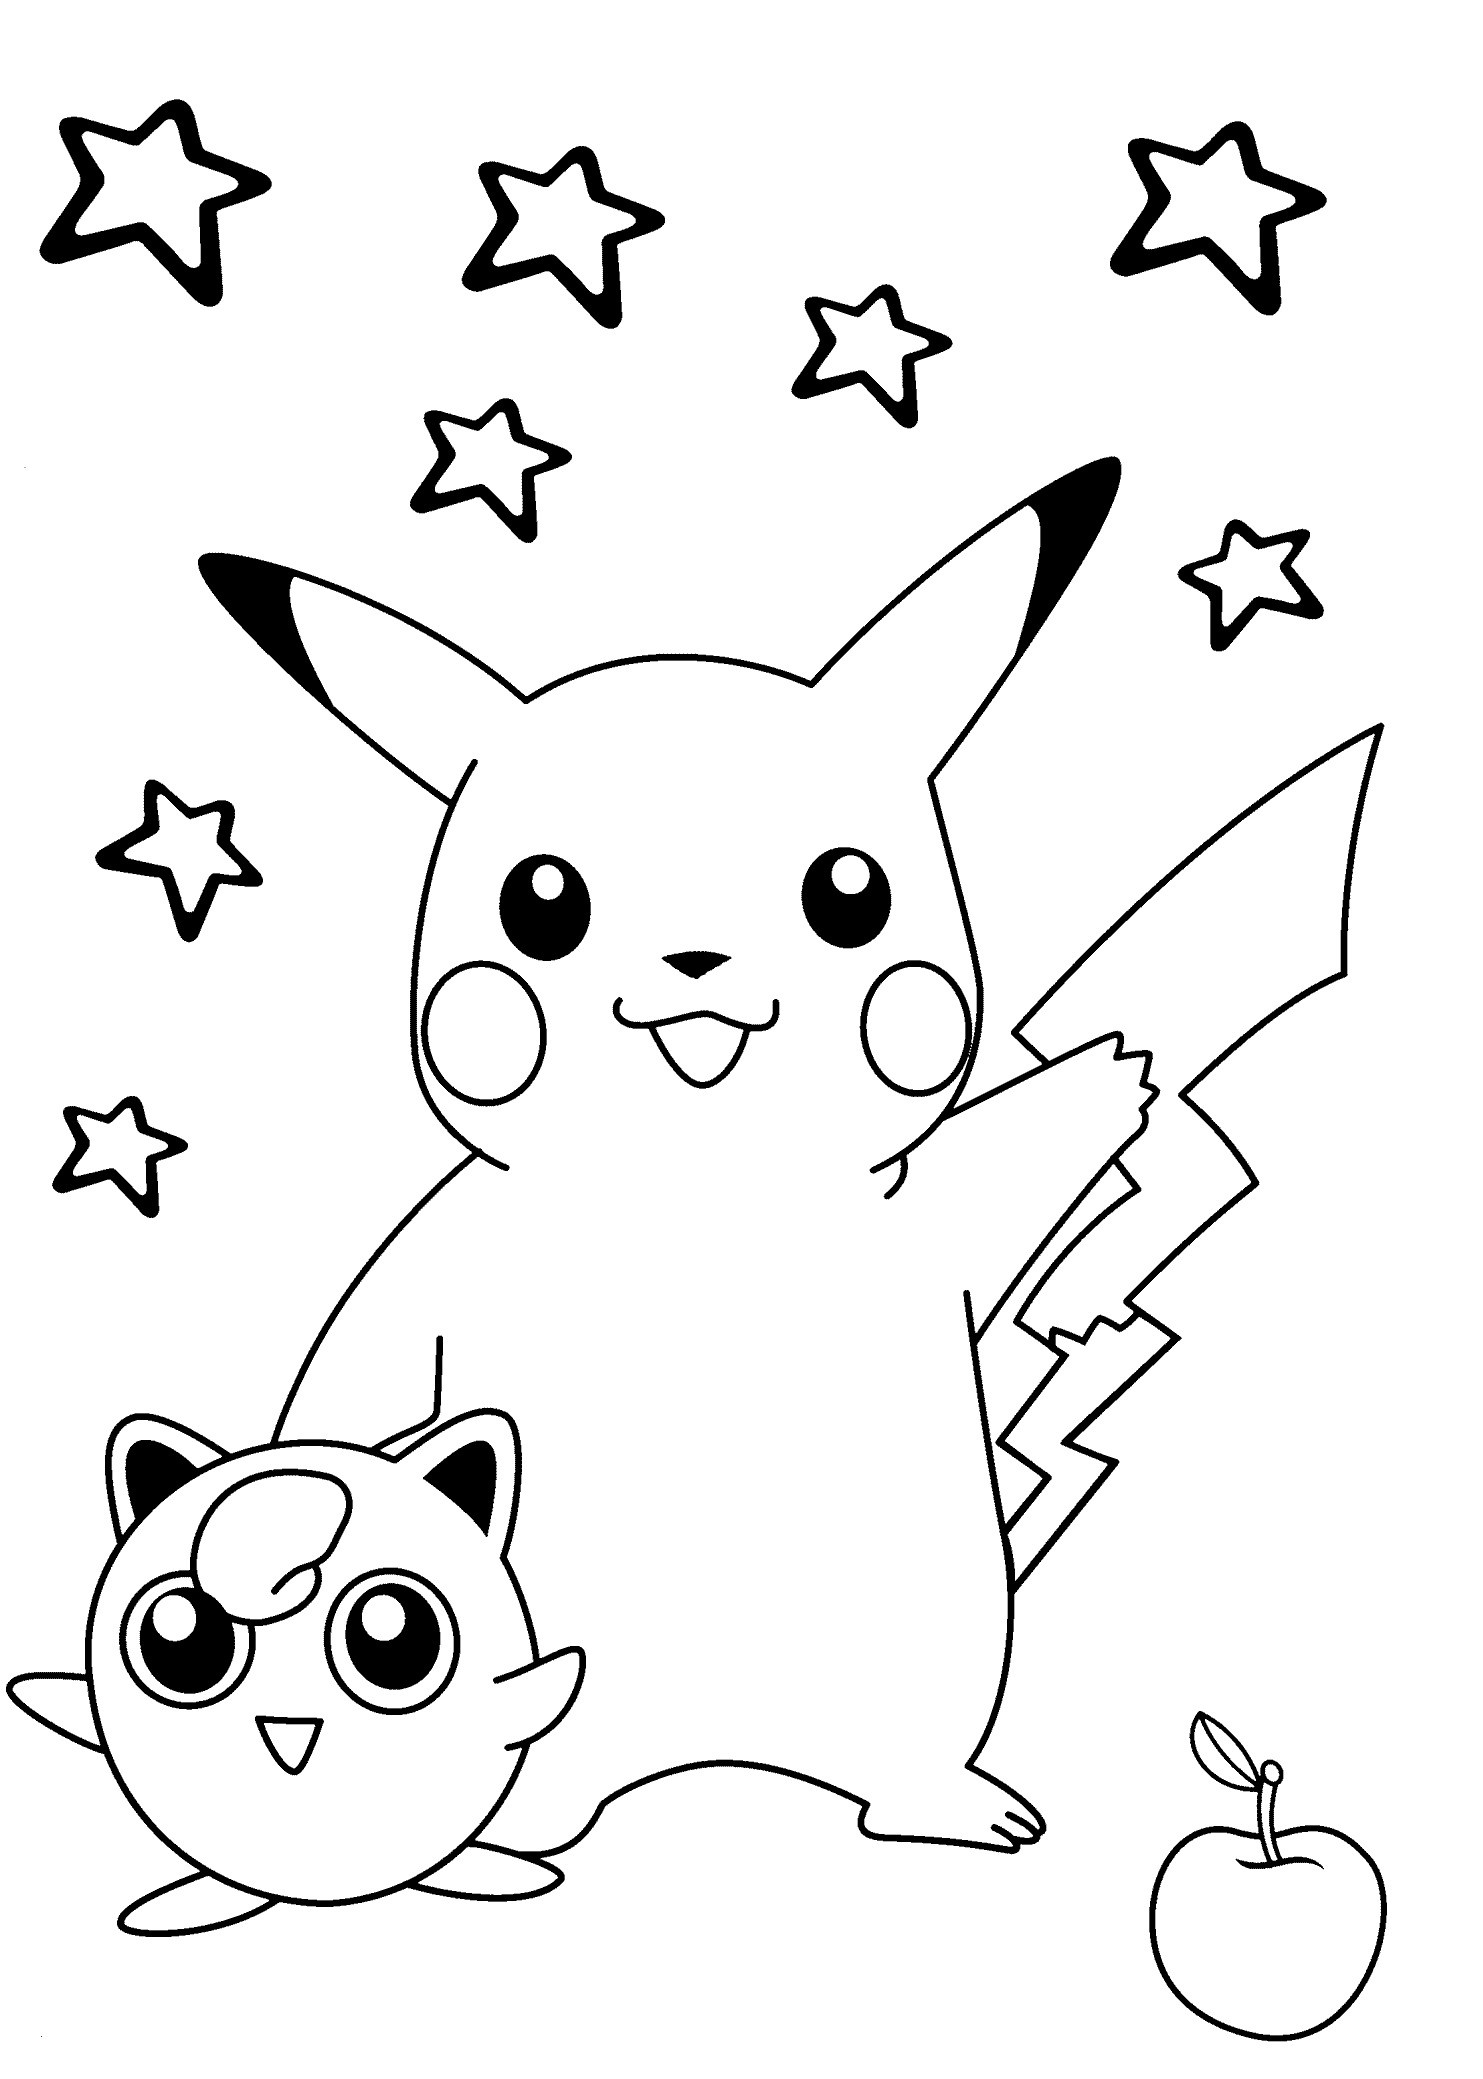 Cupcake Zum Ausmalen Genial Smiling Pokemon Coloring Pages for Kids Printable Free Best Das Bild